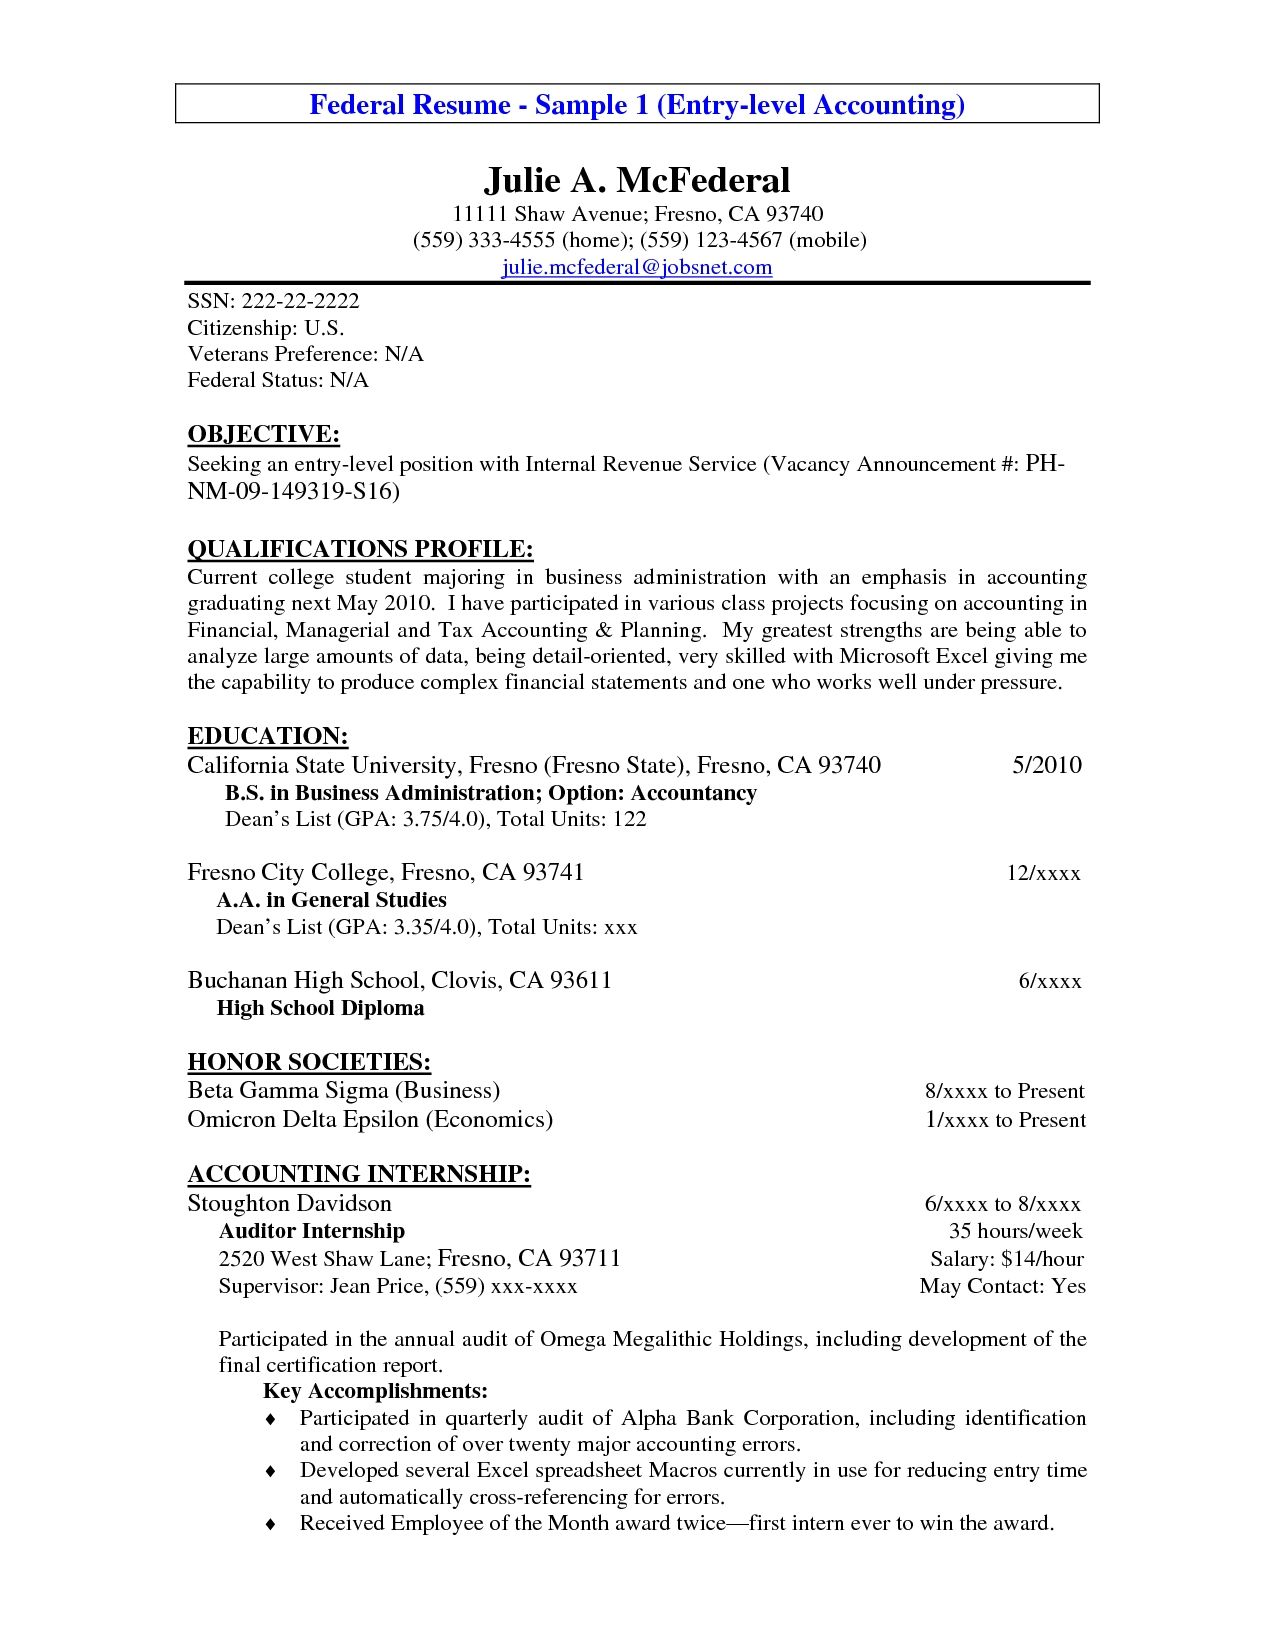 Accounting Internship Resume Sample Entry Level Resume Example Entry Level Accounting Resume Sample